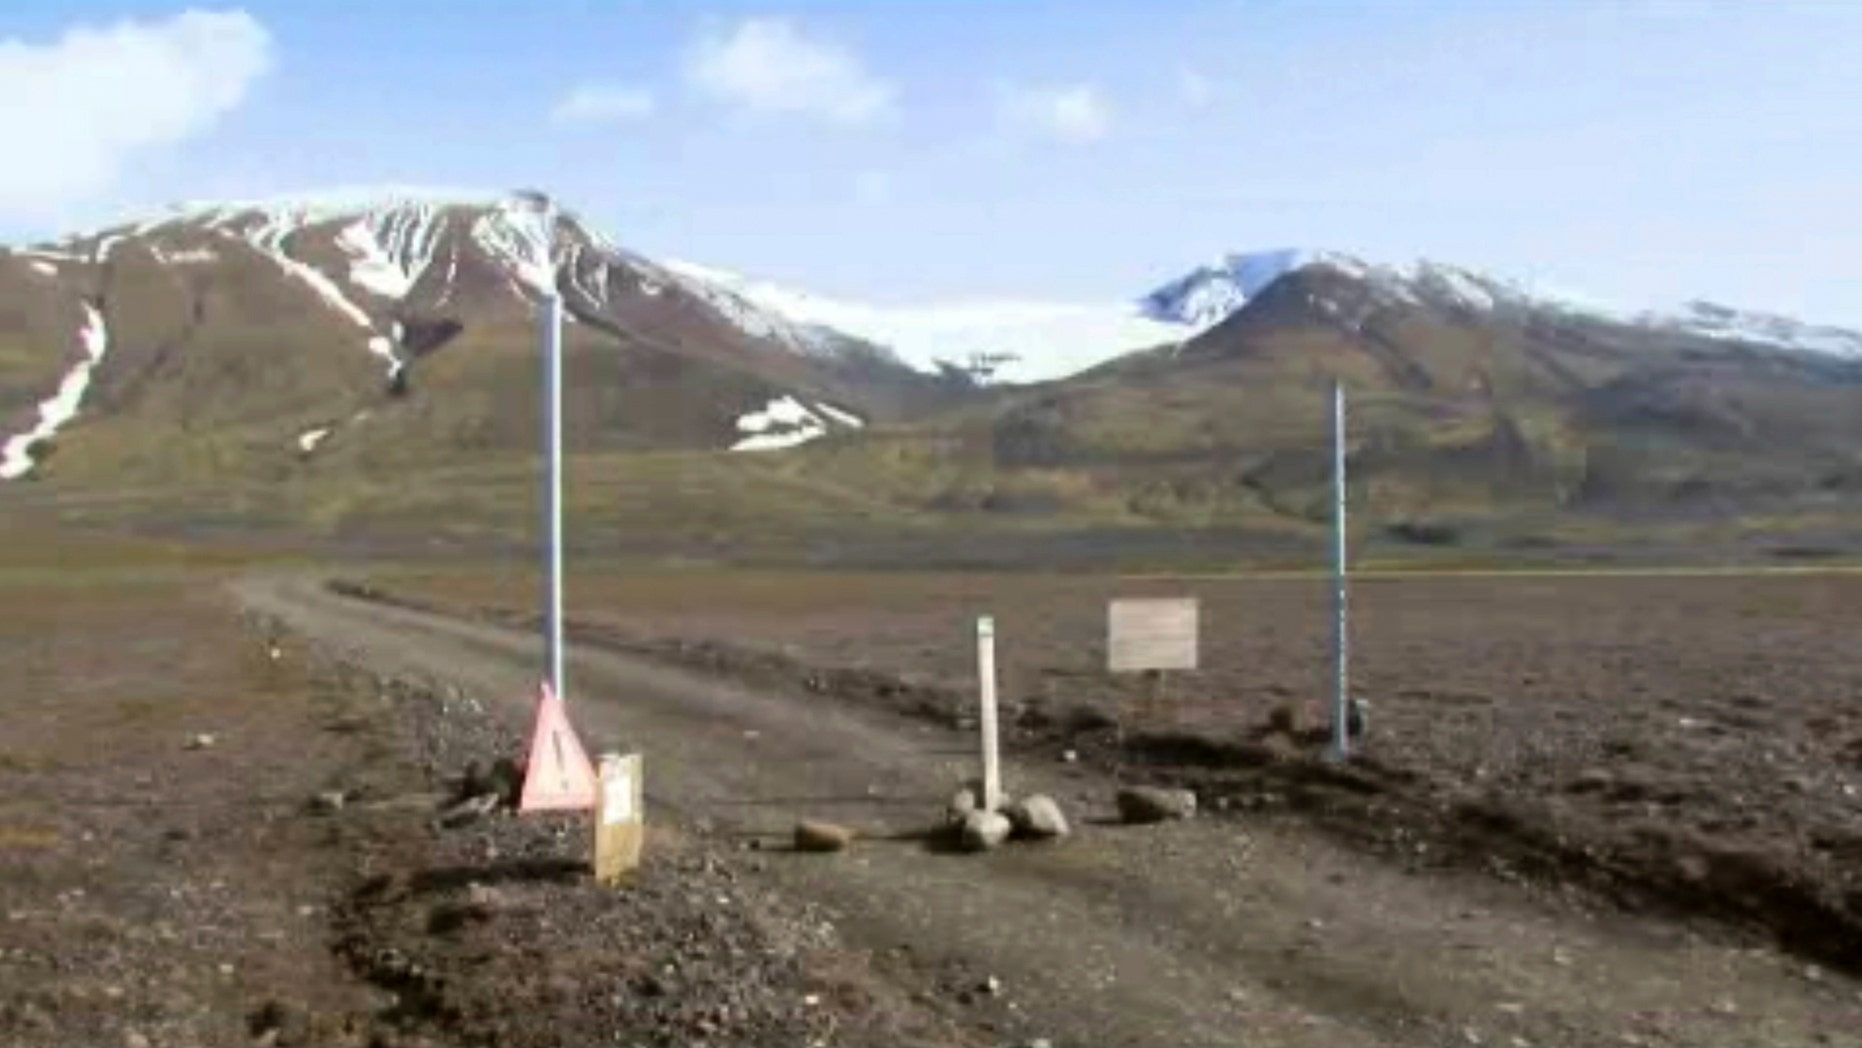 A sign is posted on the road next to Bardarbunga, a subglacial stratovolcano located under Iceland's largest glacier.